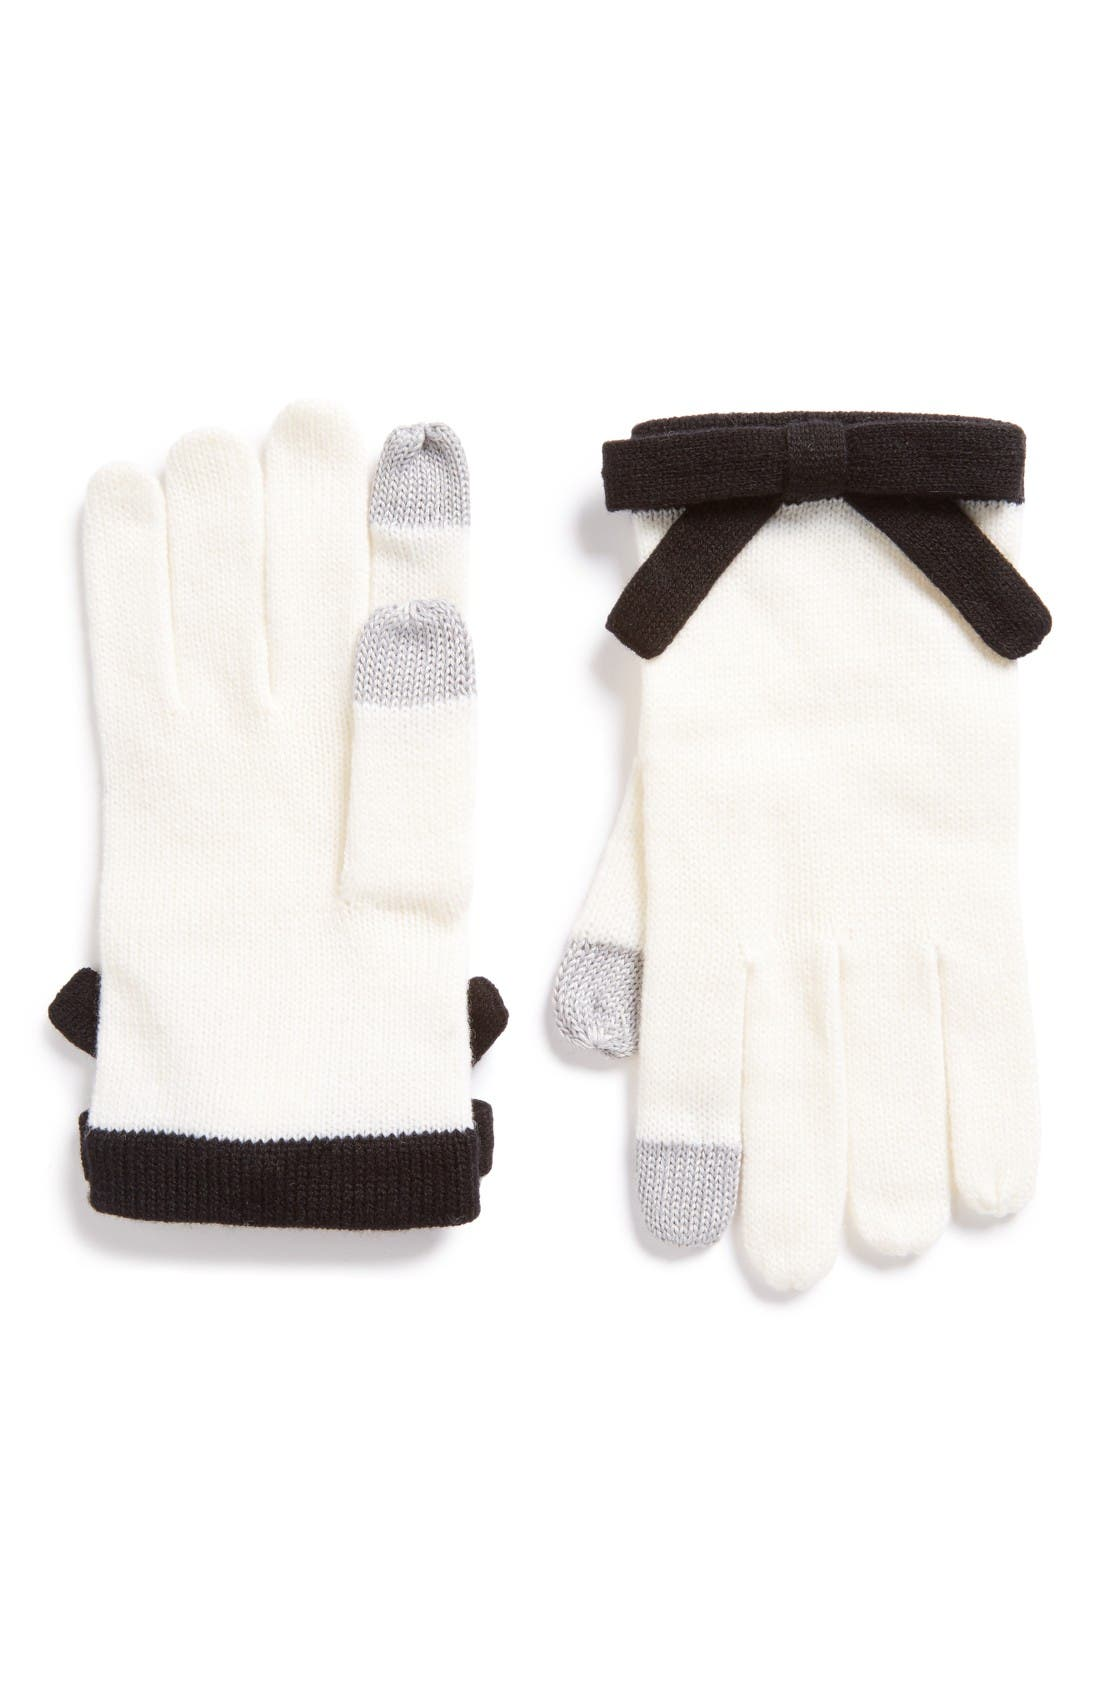 Main Image - kate spade new york contrast bow tech friendly gloves